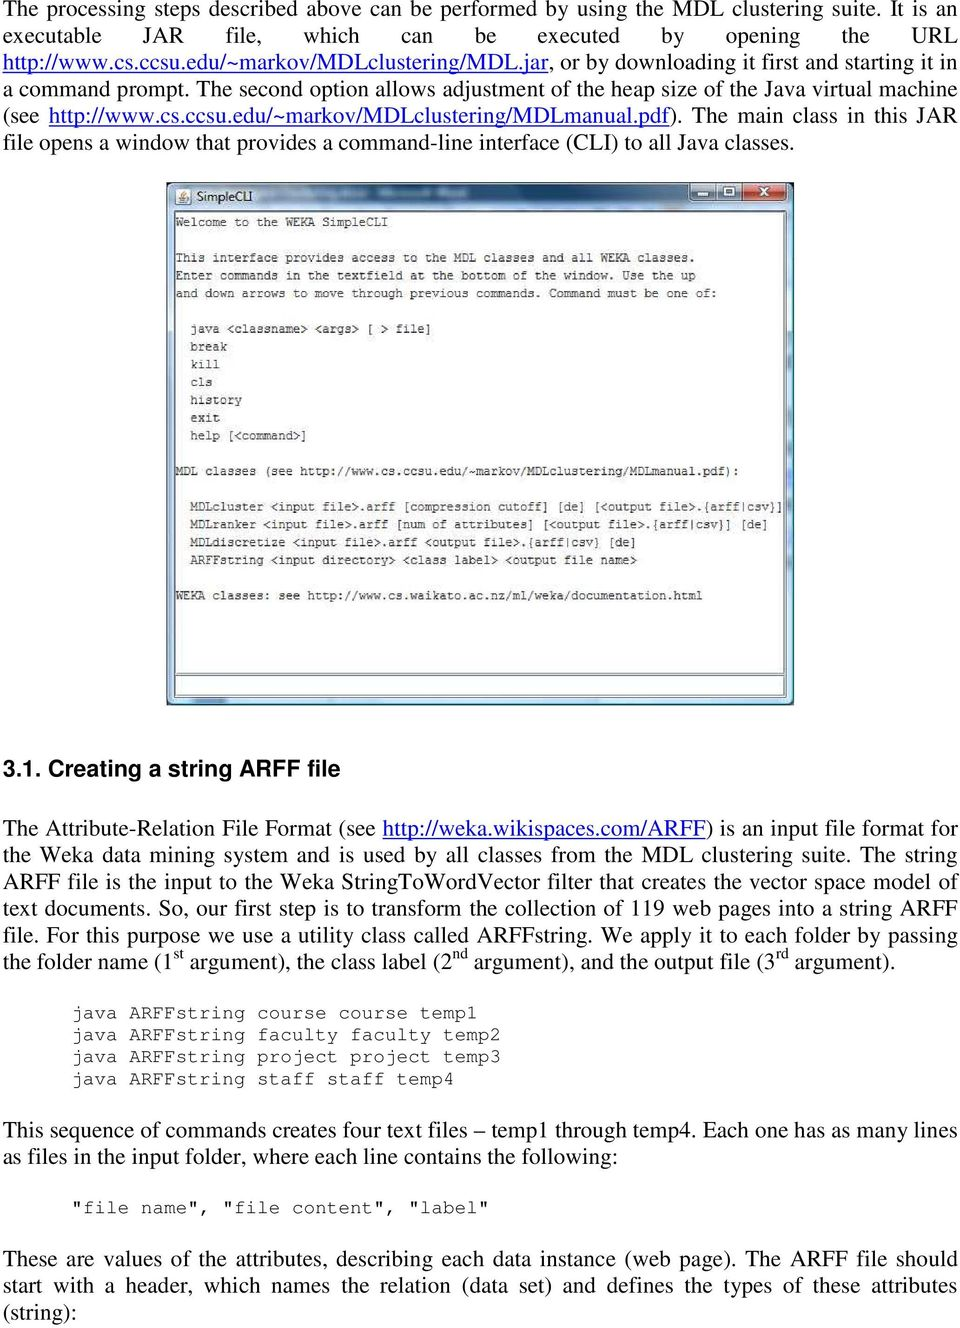 ccsu.edu/~markov/mdlclustering/mdlmanual.pdf). The main class in this JAR file opens a window that provides a command-line interface (CLI) to all Java classes. 3.1.